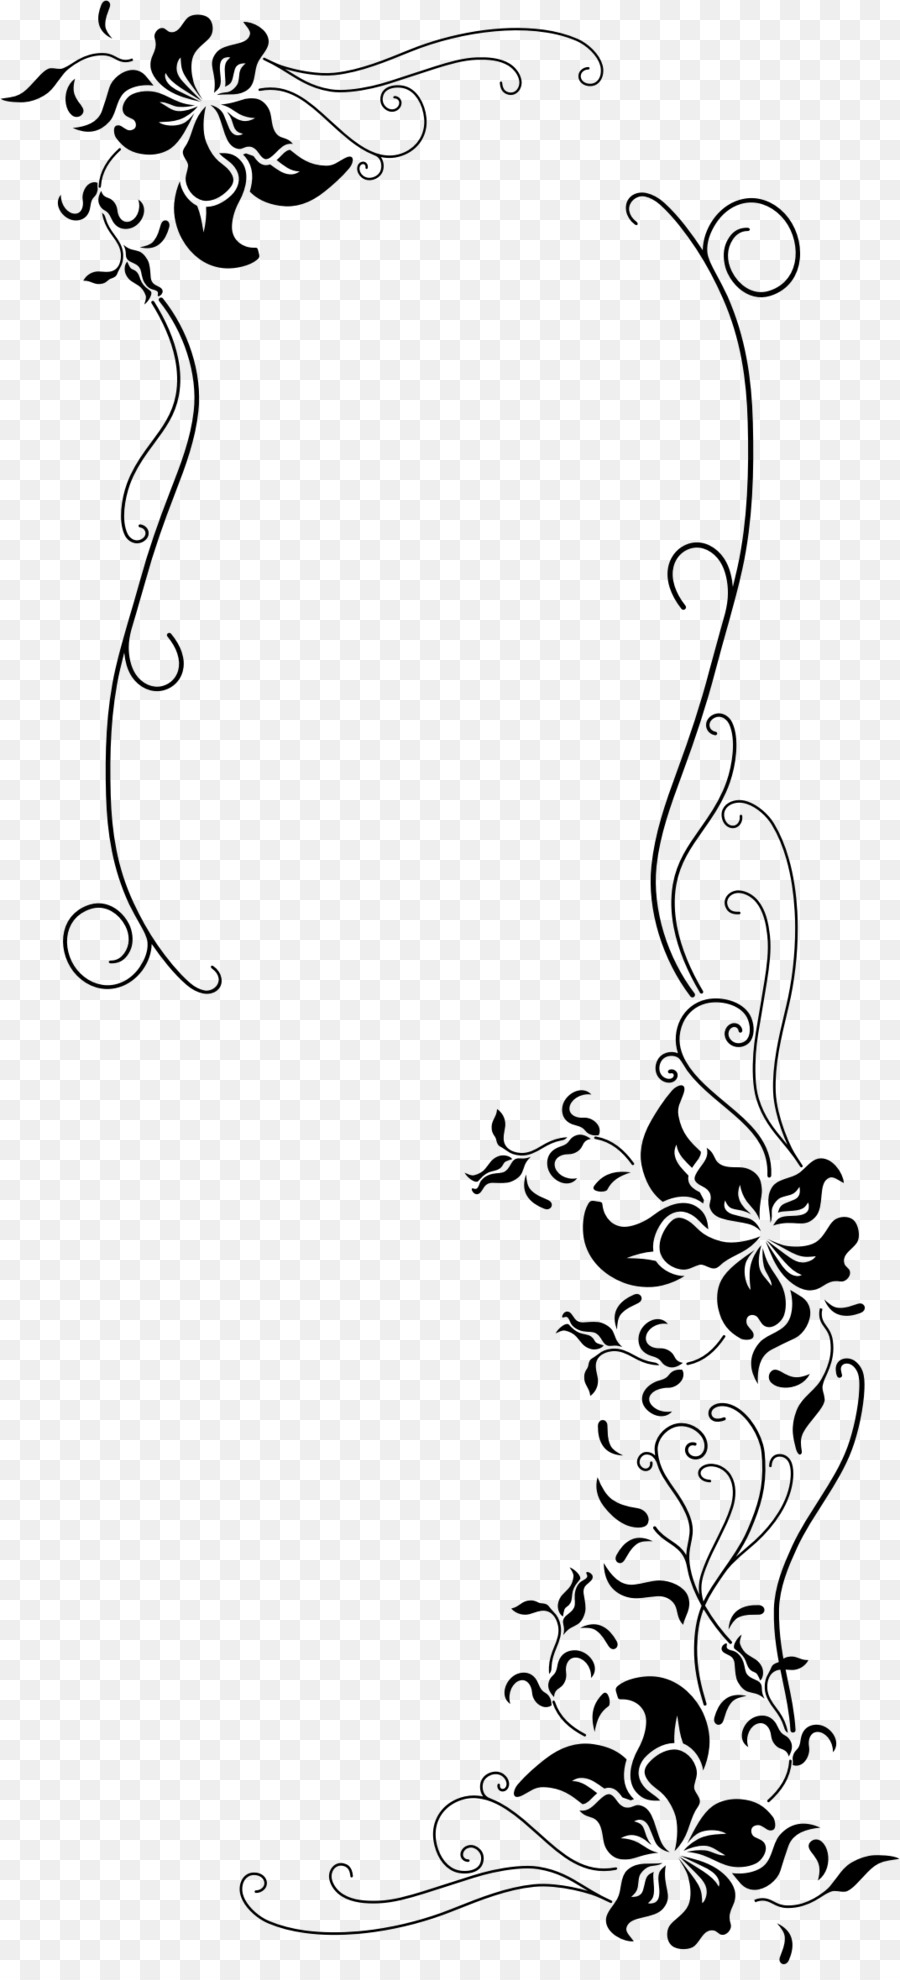 Flower Clip Art Small Fresh Floral Borders Png Download 1072